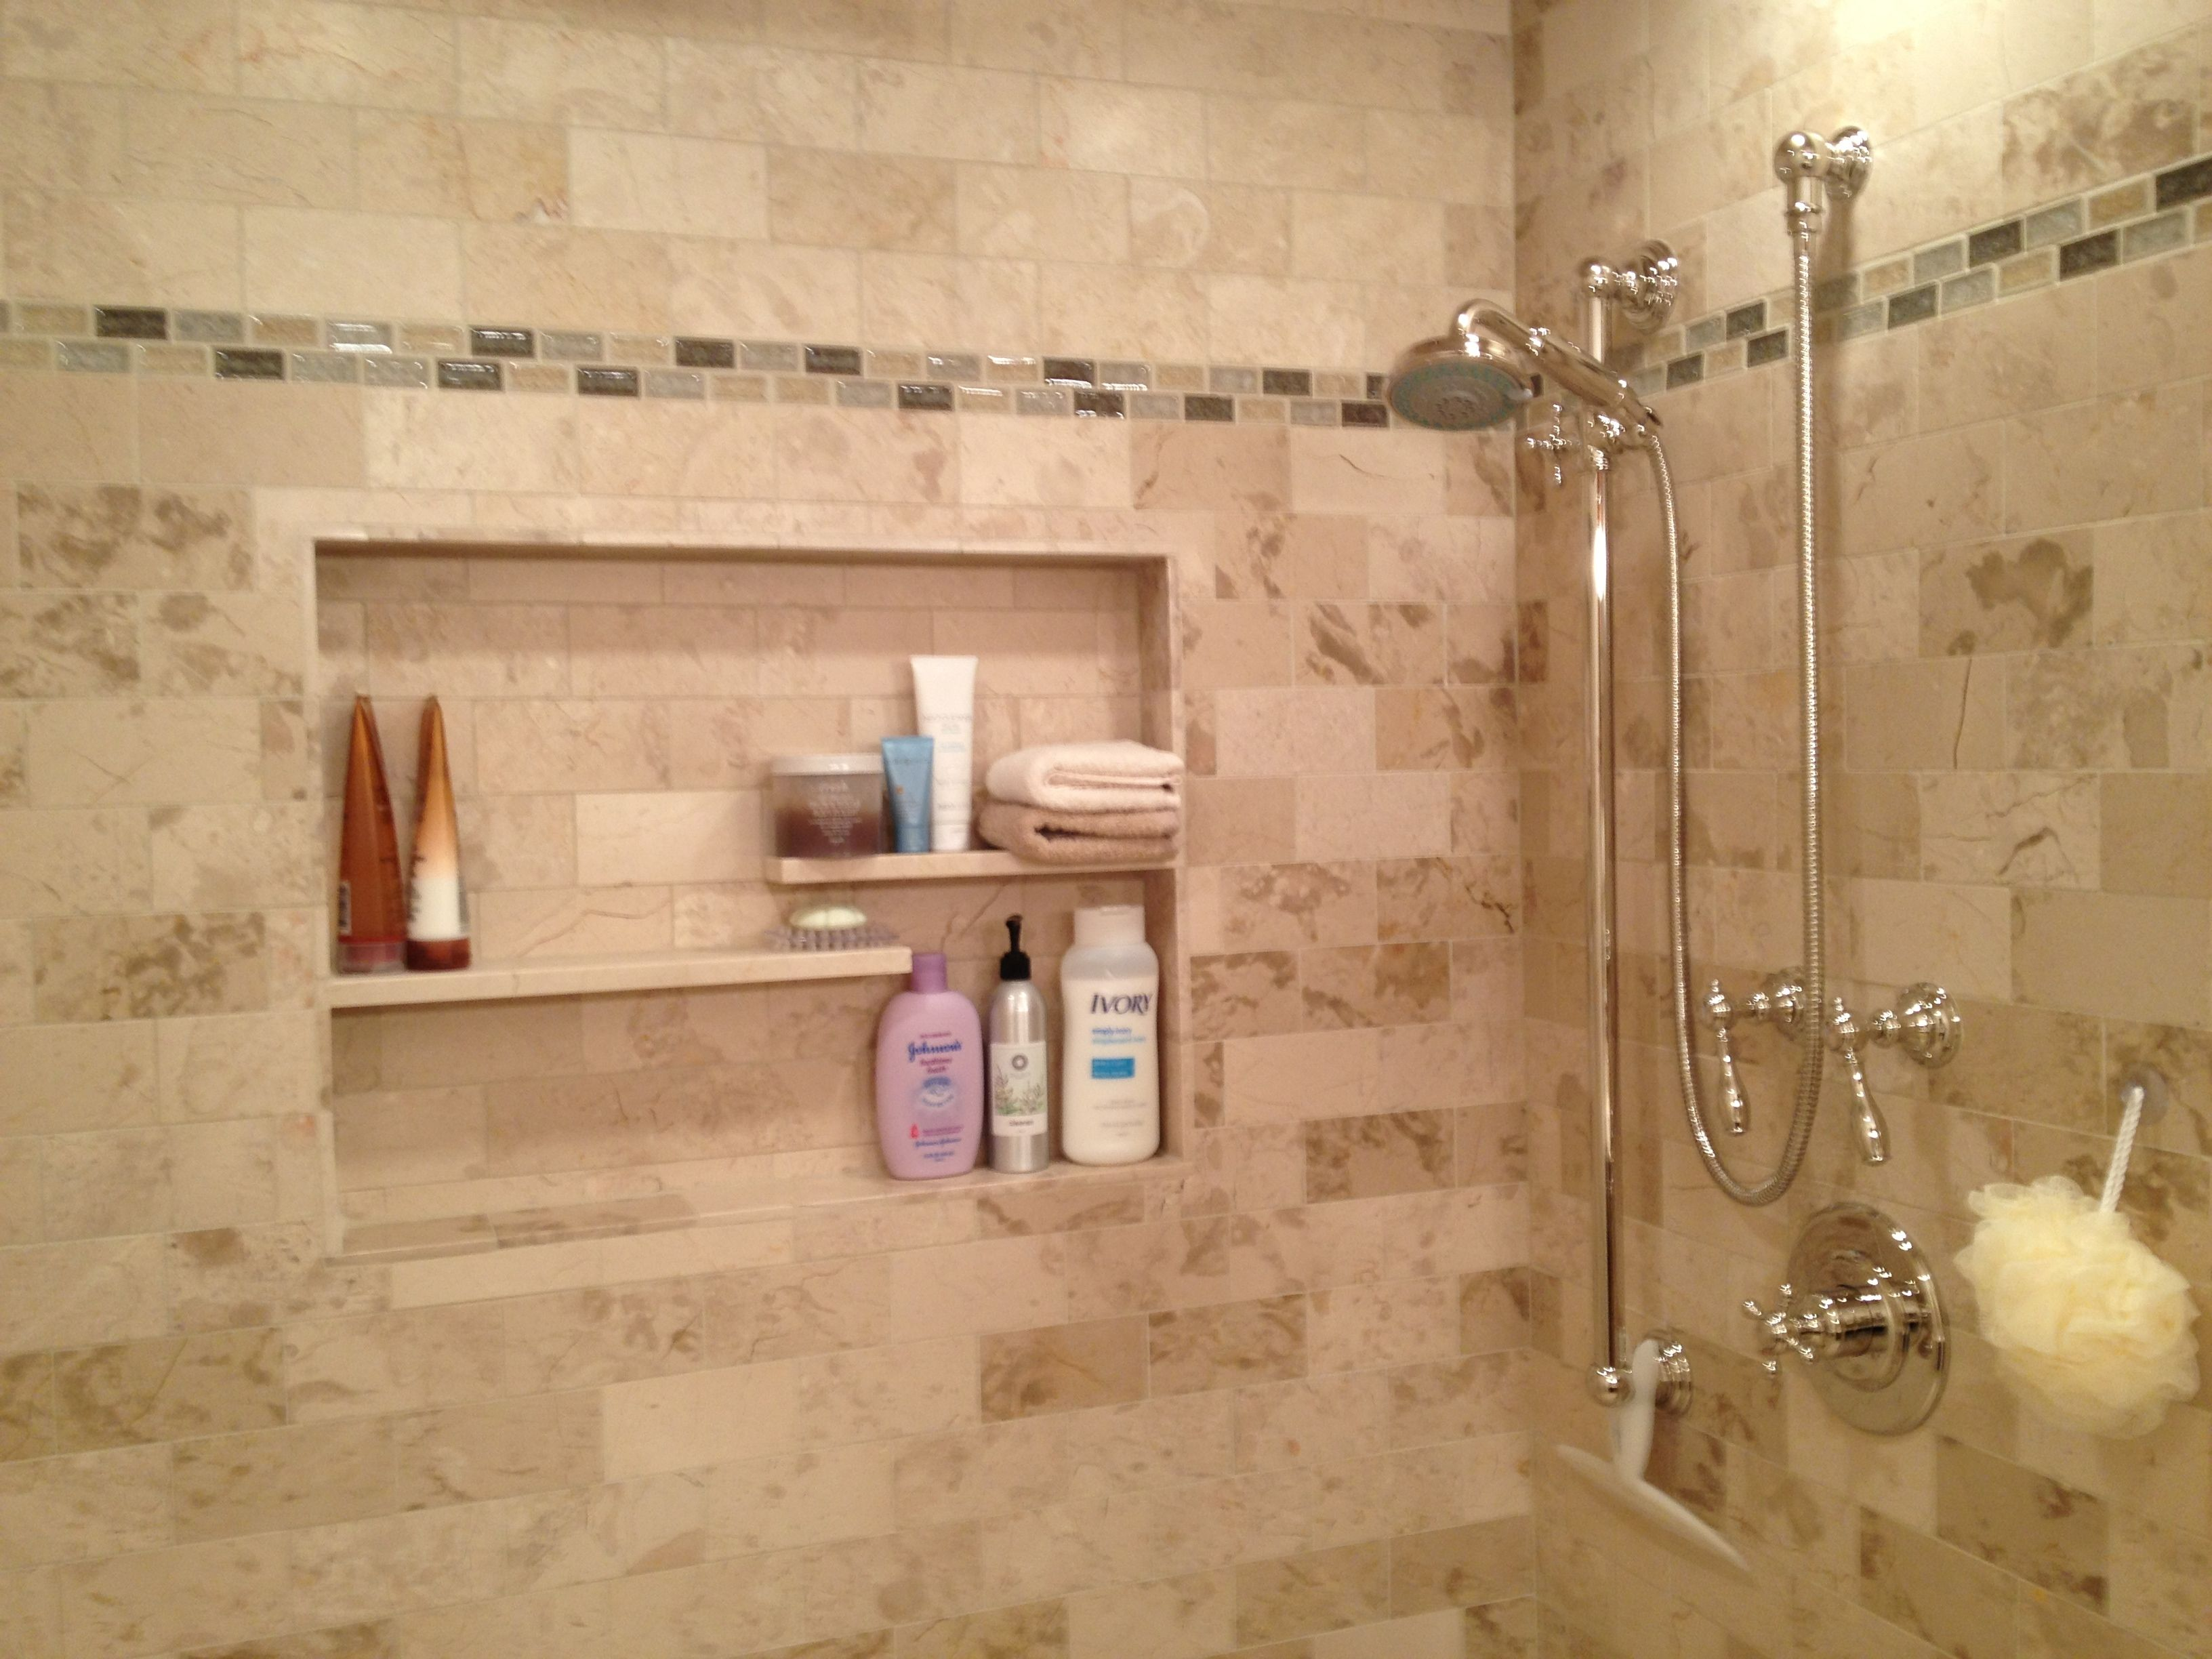 Badezimmerdesigns 8 x 6 image result for niche in shower wall  decor ideas bmh homes in